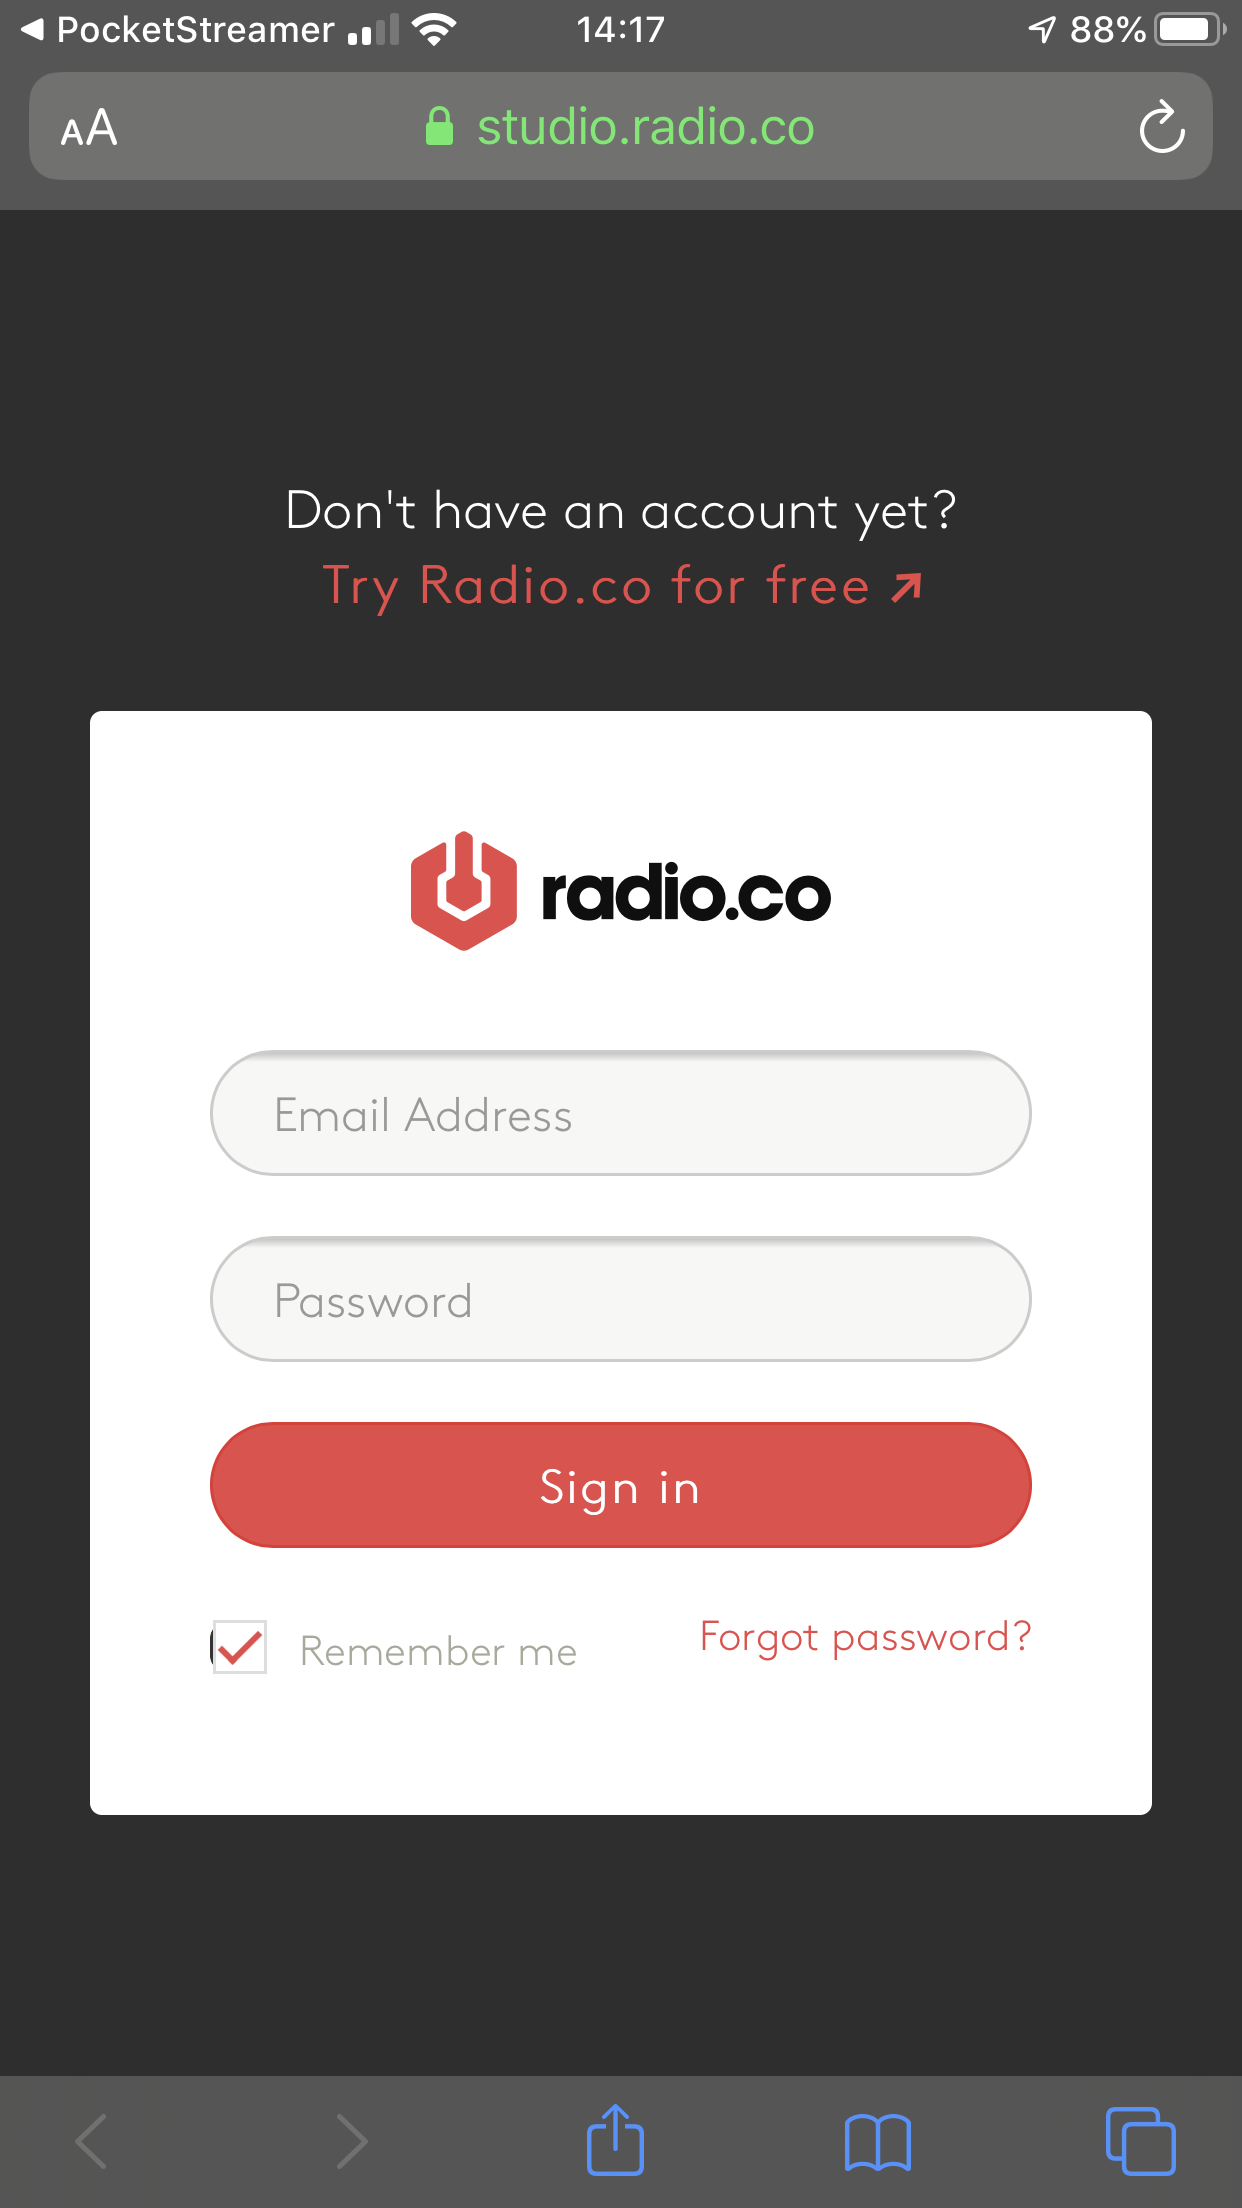 Connecting to Radio.co in PocketStreamer.